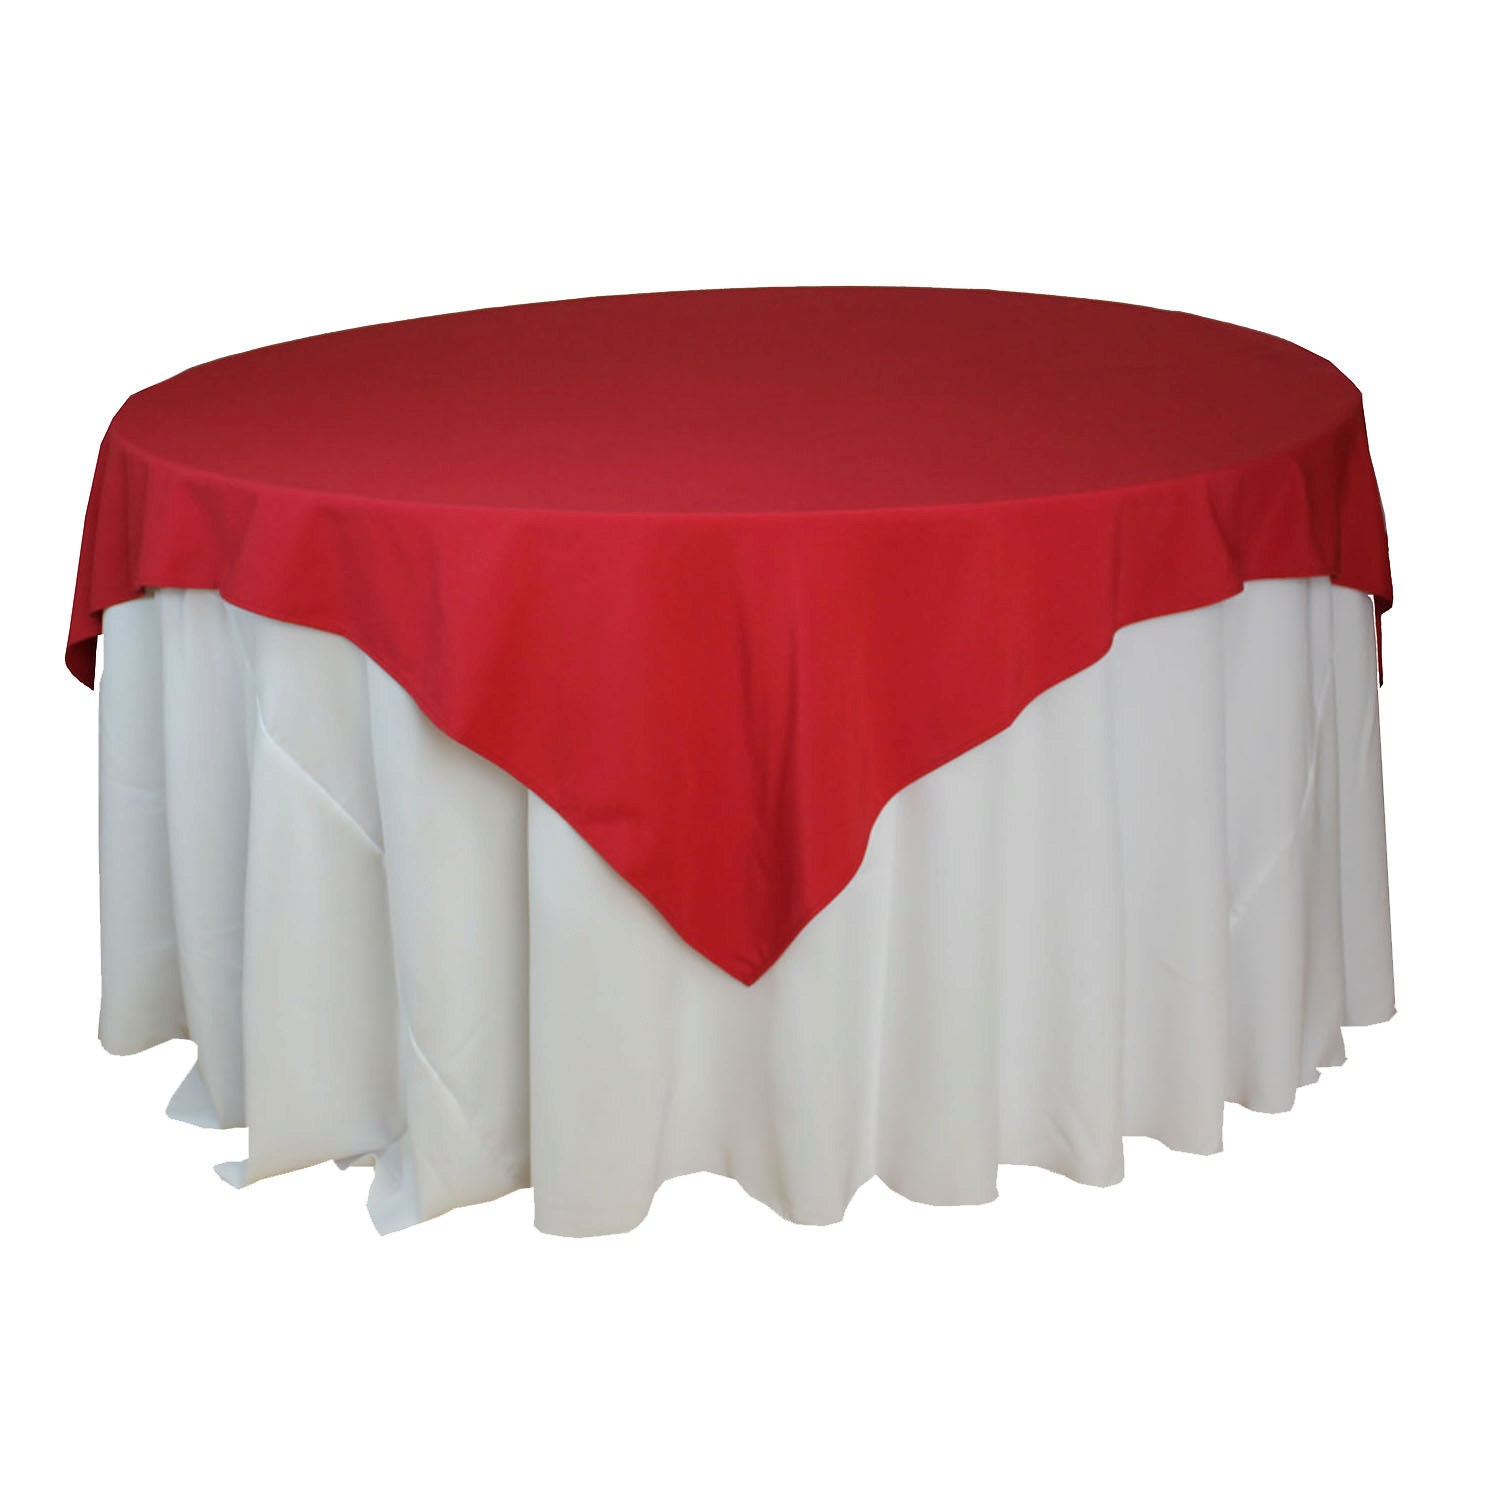 Red table overlays 85 x 85 inches square red tablecloths for 85 inch tablecloths